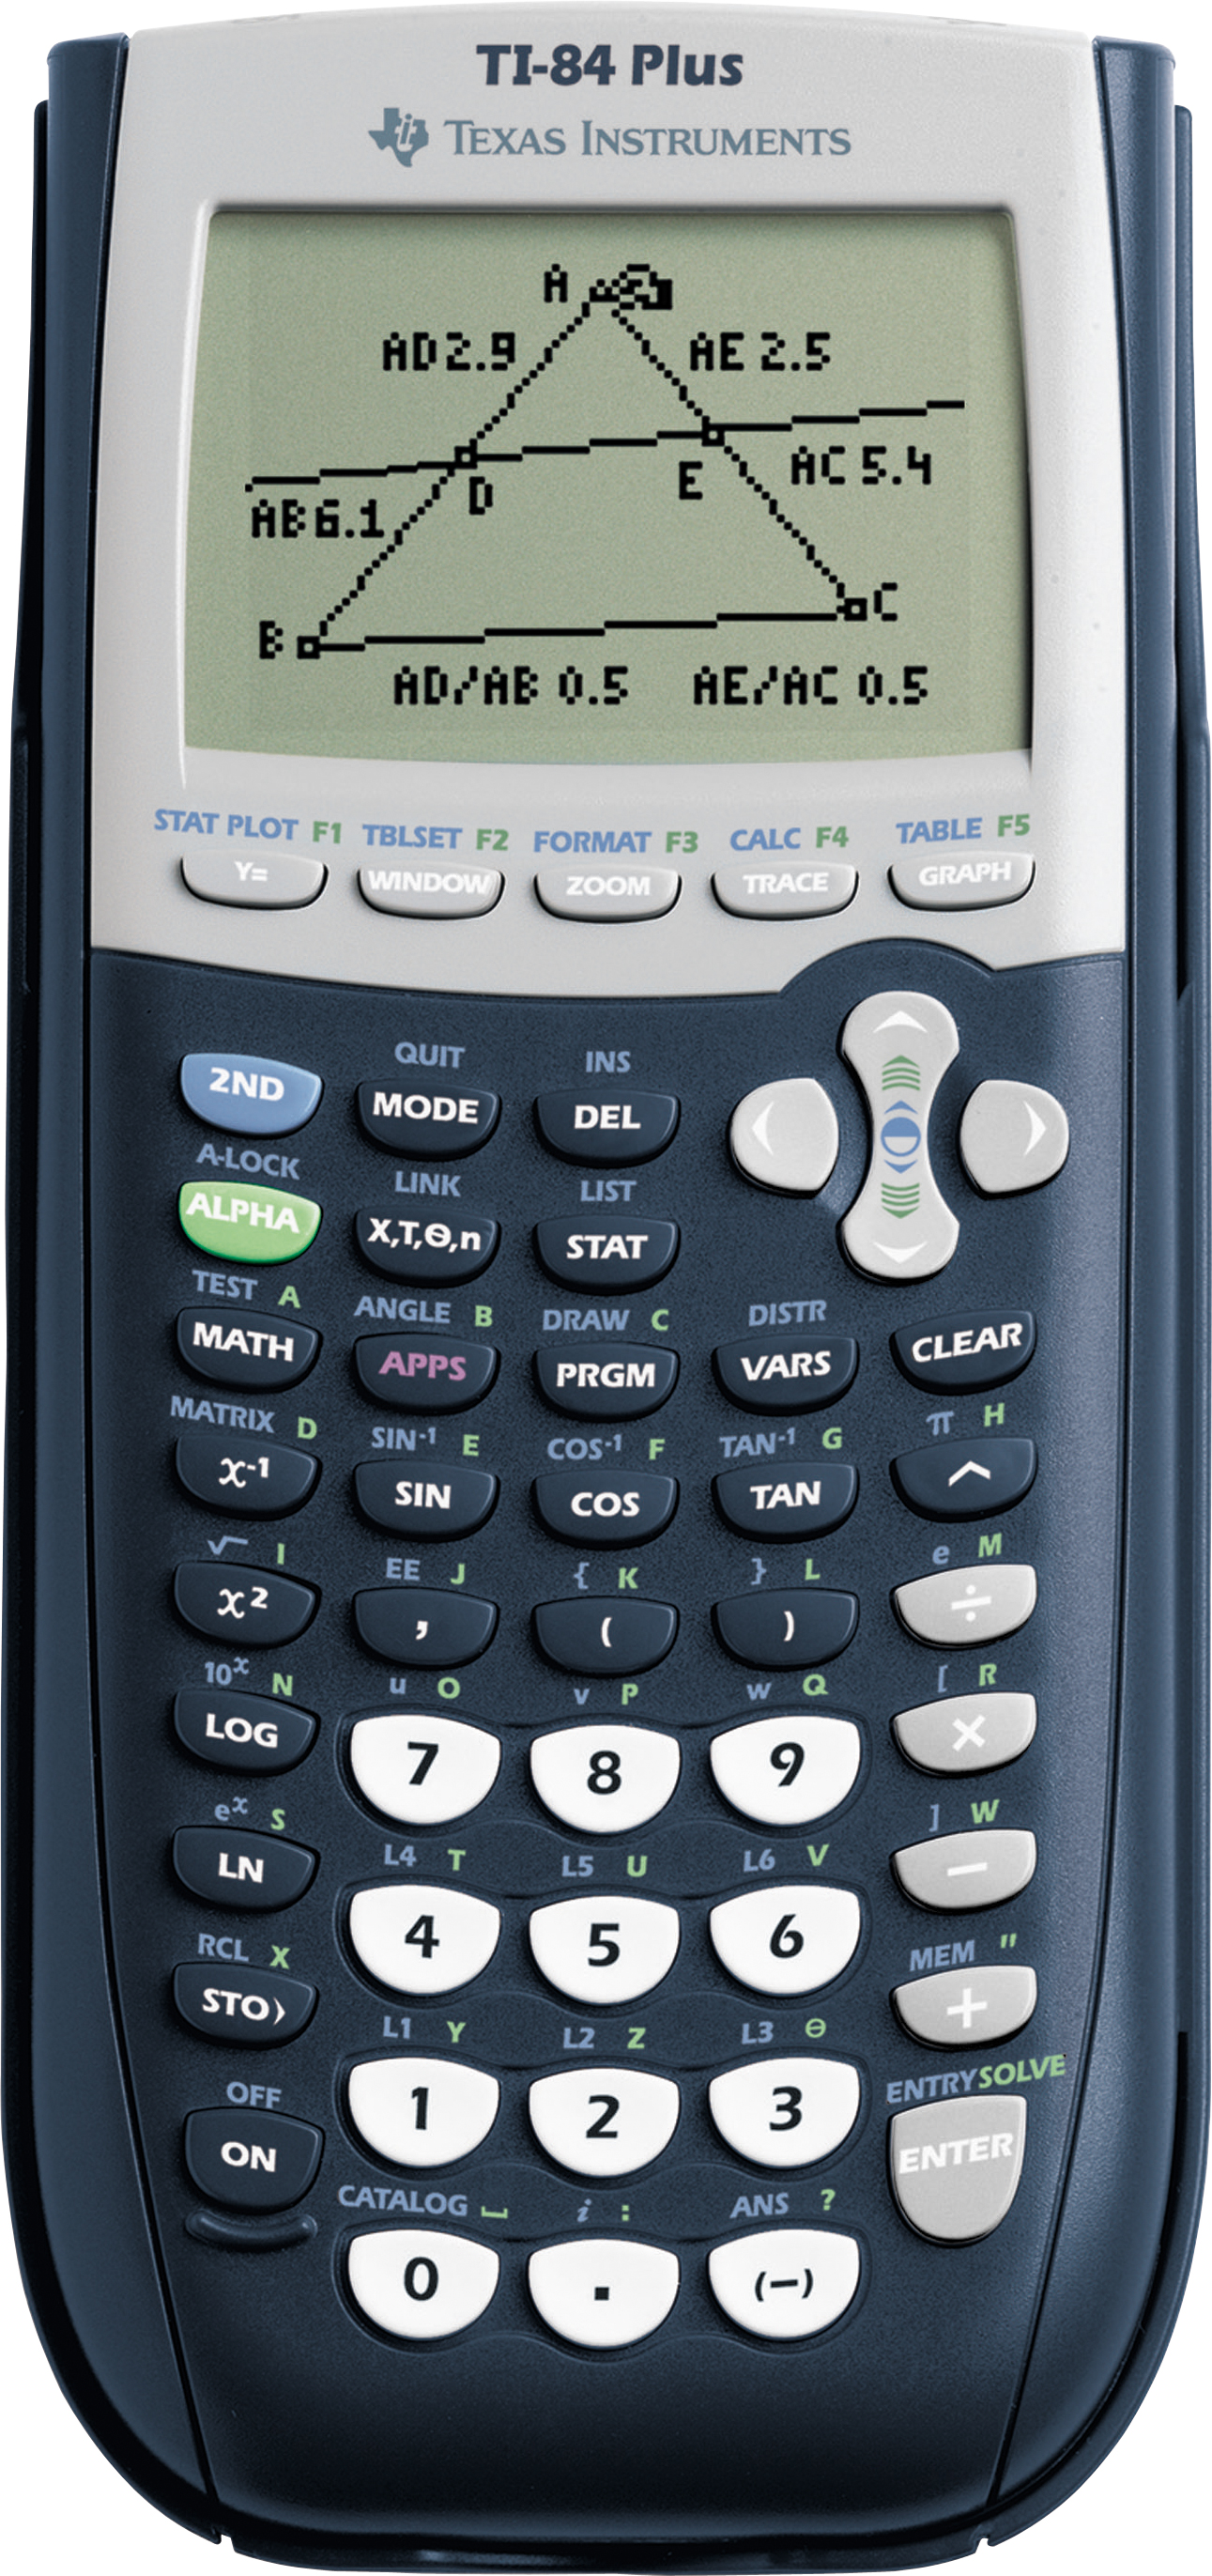 Texas Instruments – transforming the world, one graphing calculator